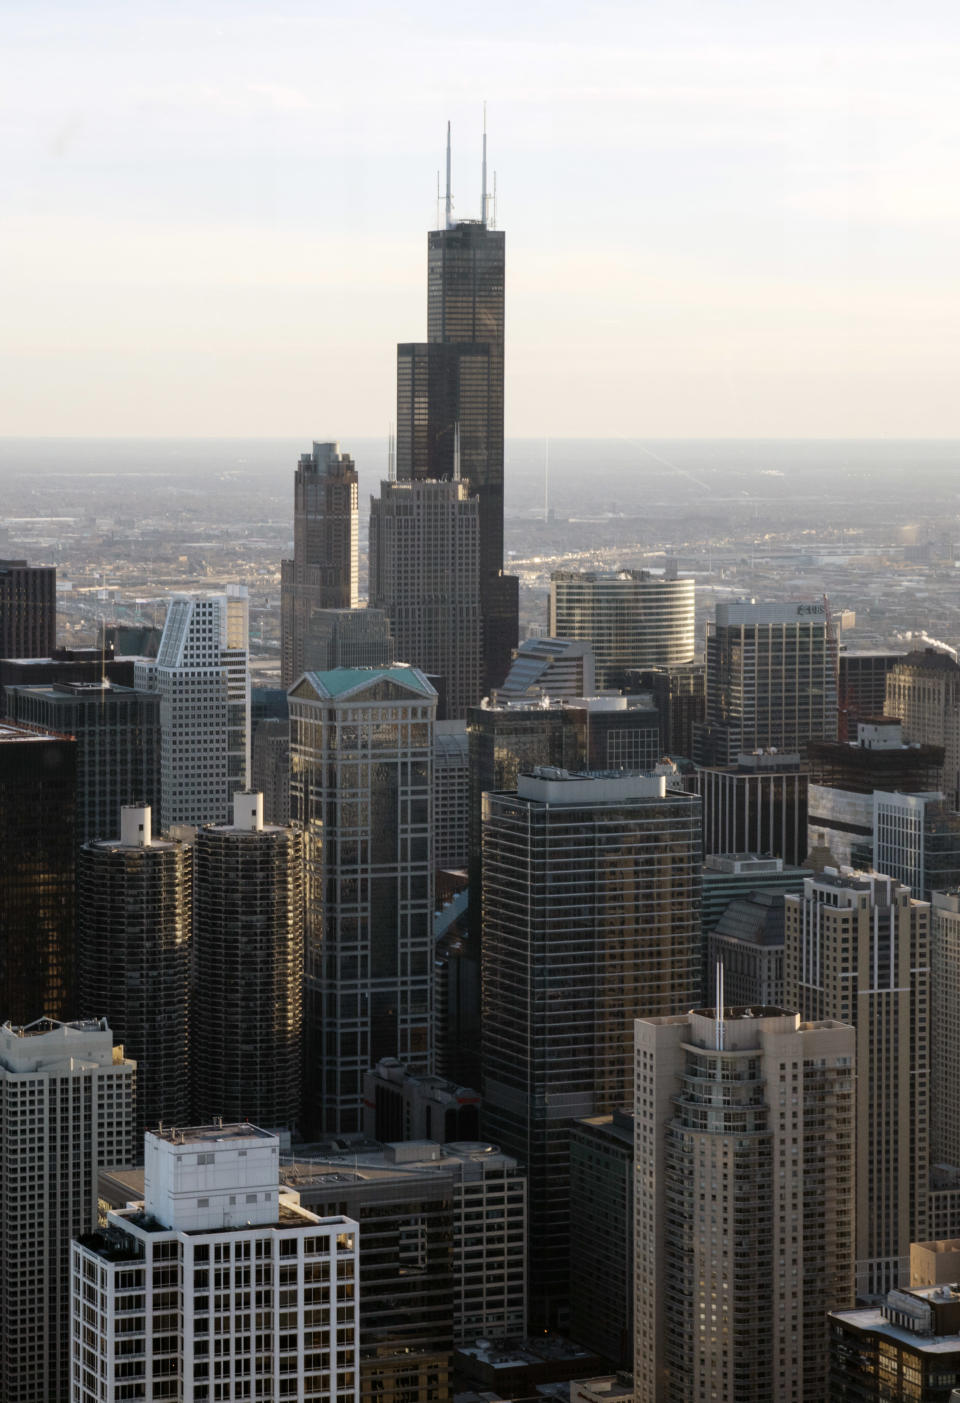 United Airlines is giving up some 150,000 square feet at Willis Tower in Chicago, the third tallest building in the country. (David Kasnic/The New York Times)